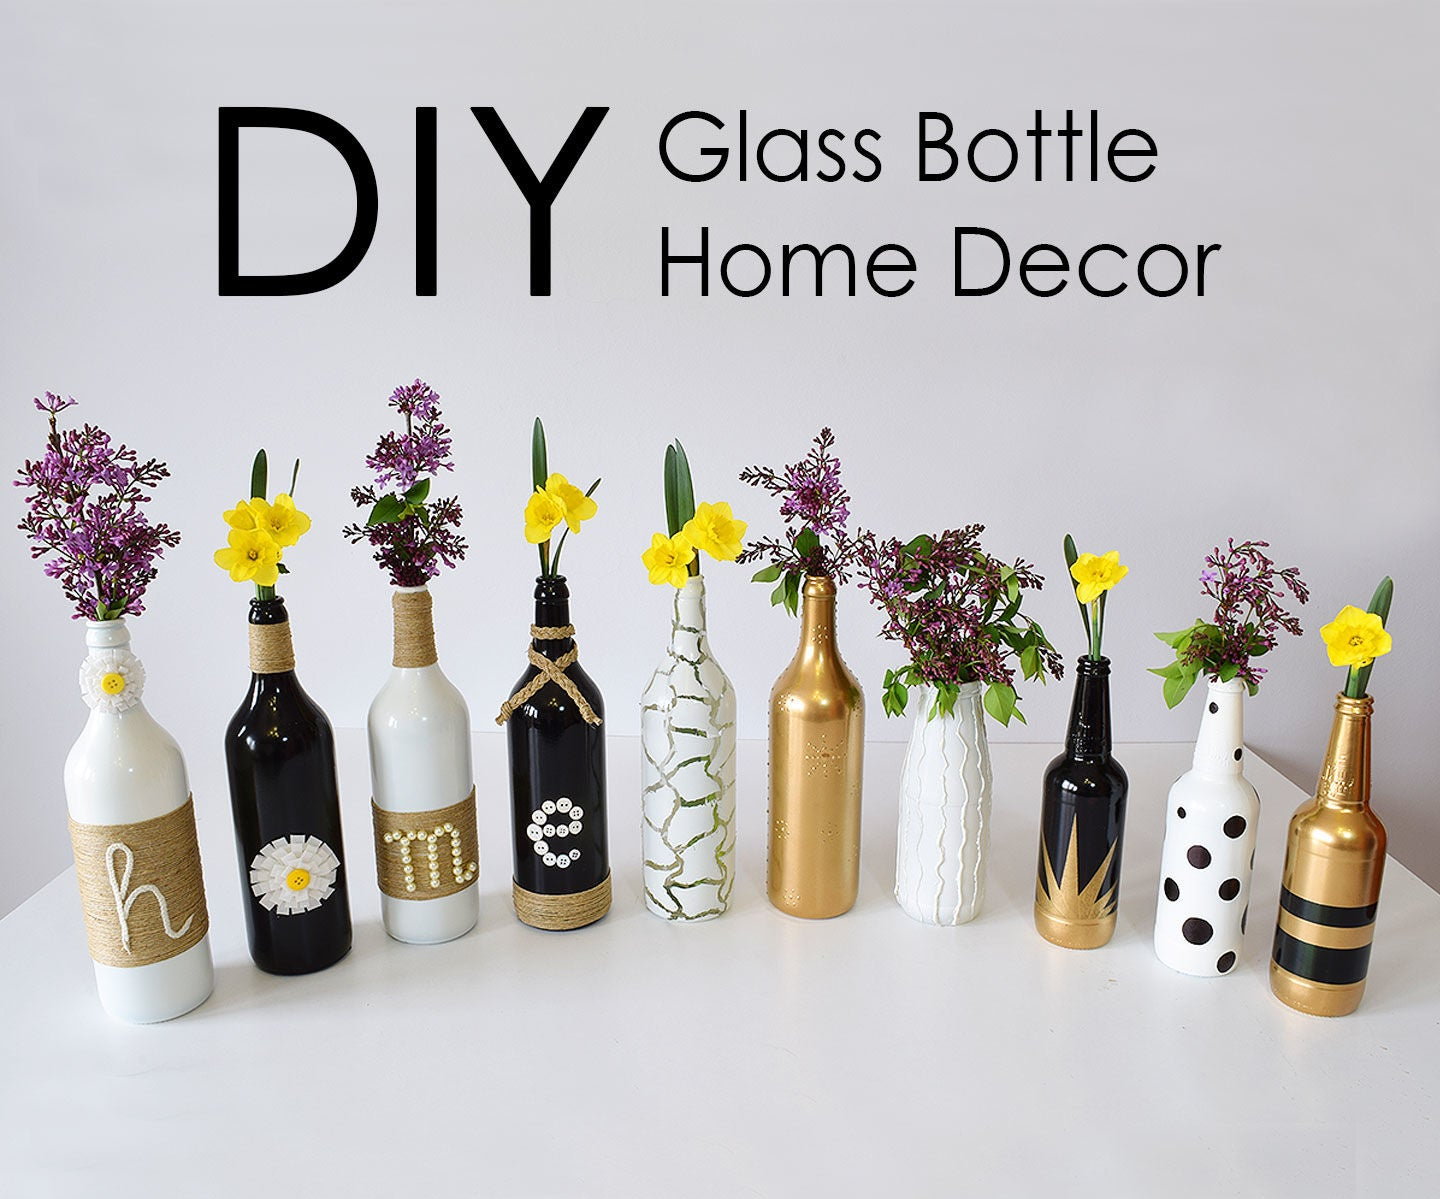 Diy Glass Bottle Home Decor 3 Simple Ideas 9 Steps With Pictures